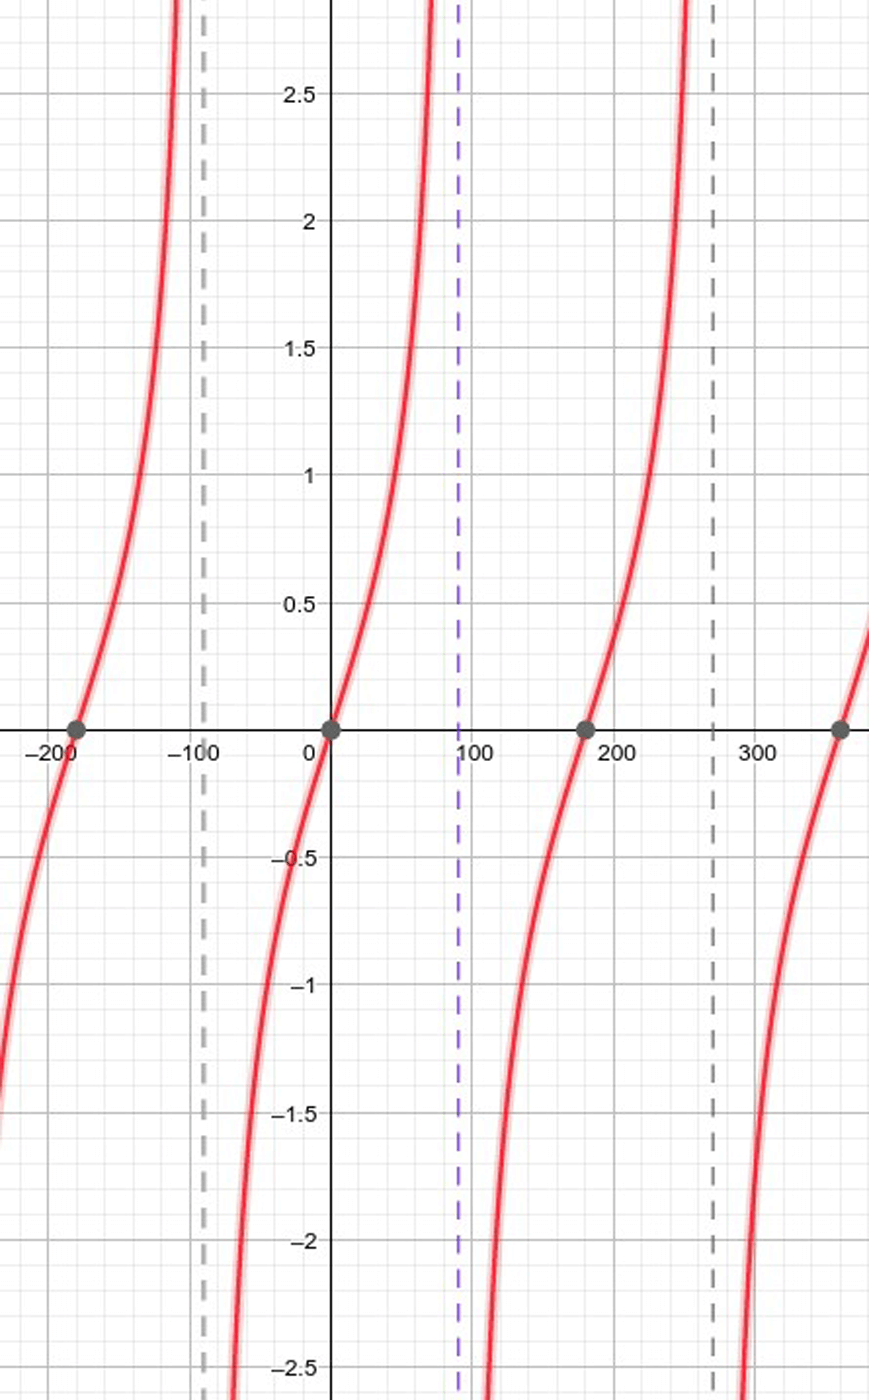 guide-maths-y-10-tan-graph-red-lines-on-grid